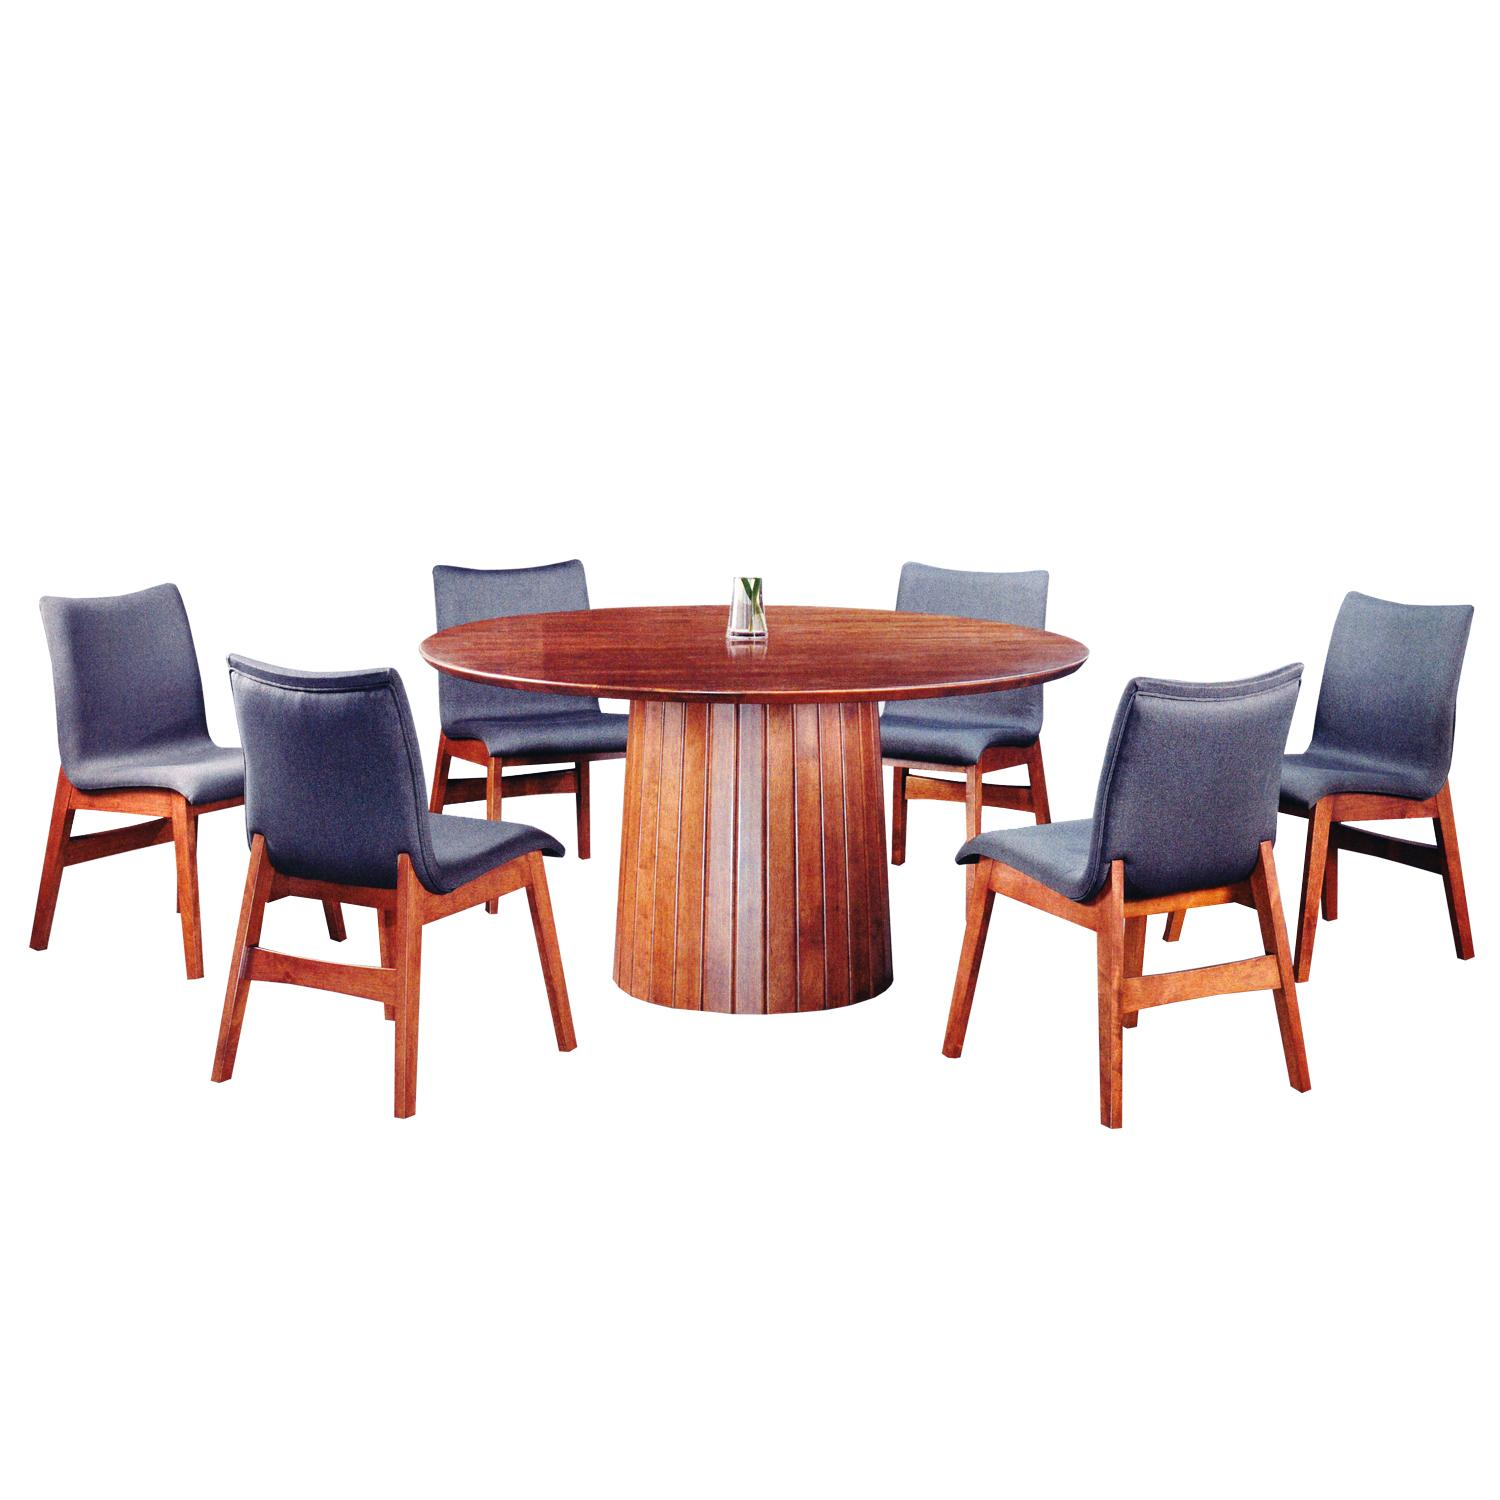 LIVING MALL_Farnham Dining Set 1+6_FREE DELIVERY